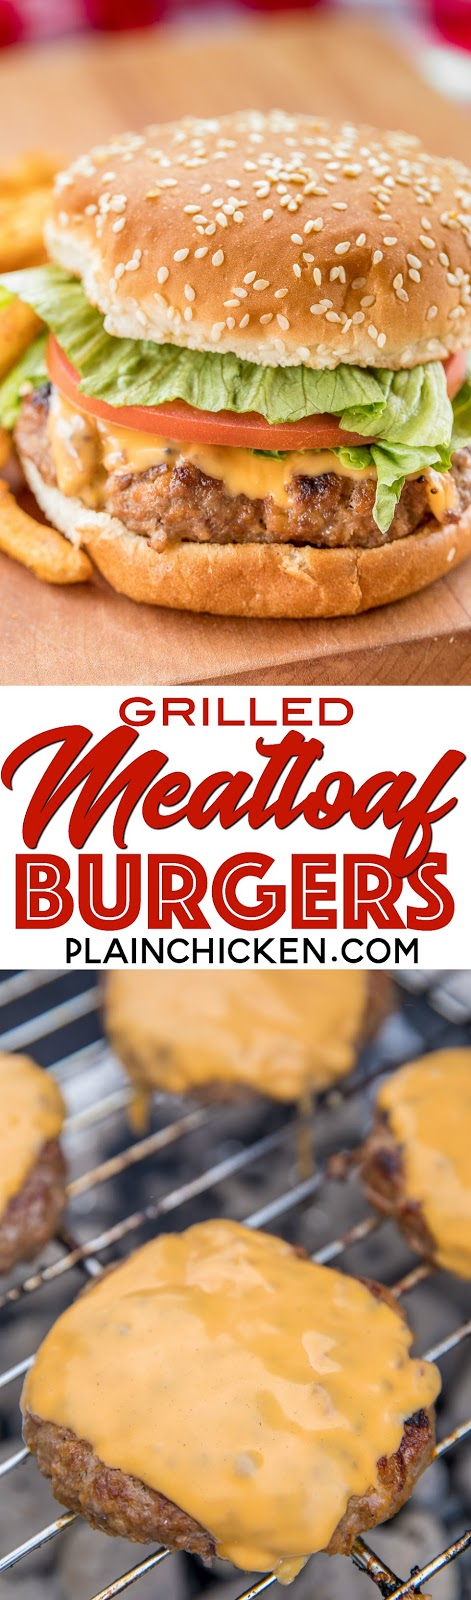 Grilled Meatloaf Burgers - AMAZING burgers! Ground beef, ketchup, mustard, onion, bread crumbs, milk and Worcestershire sauce. Can make ahead and freeze for later. We ate these burgers twice in one day. SO good!!! #burgers #grilling #hamburgerrecipe